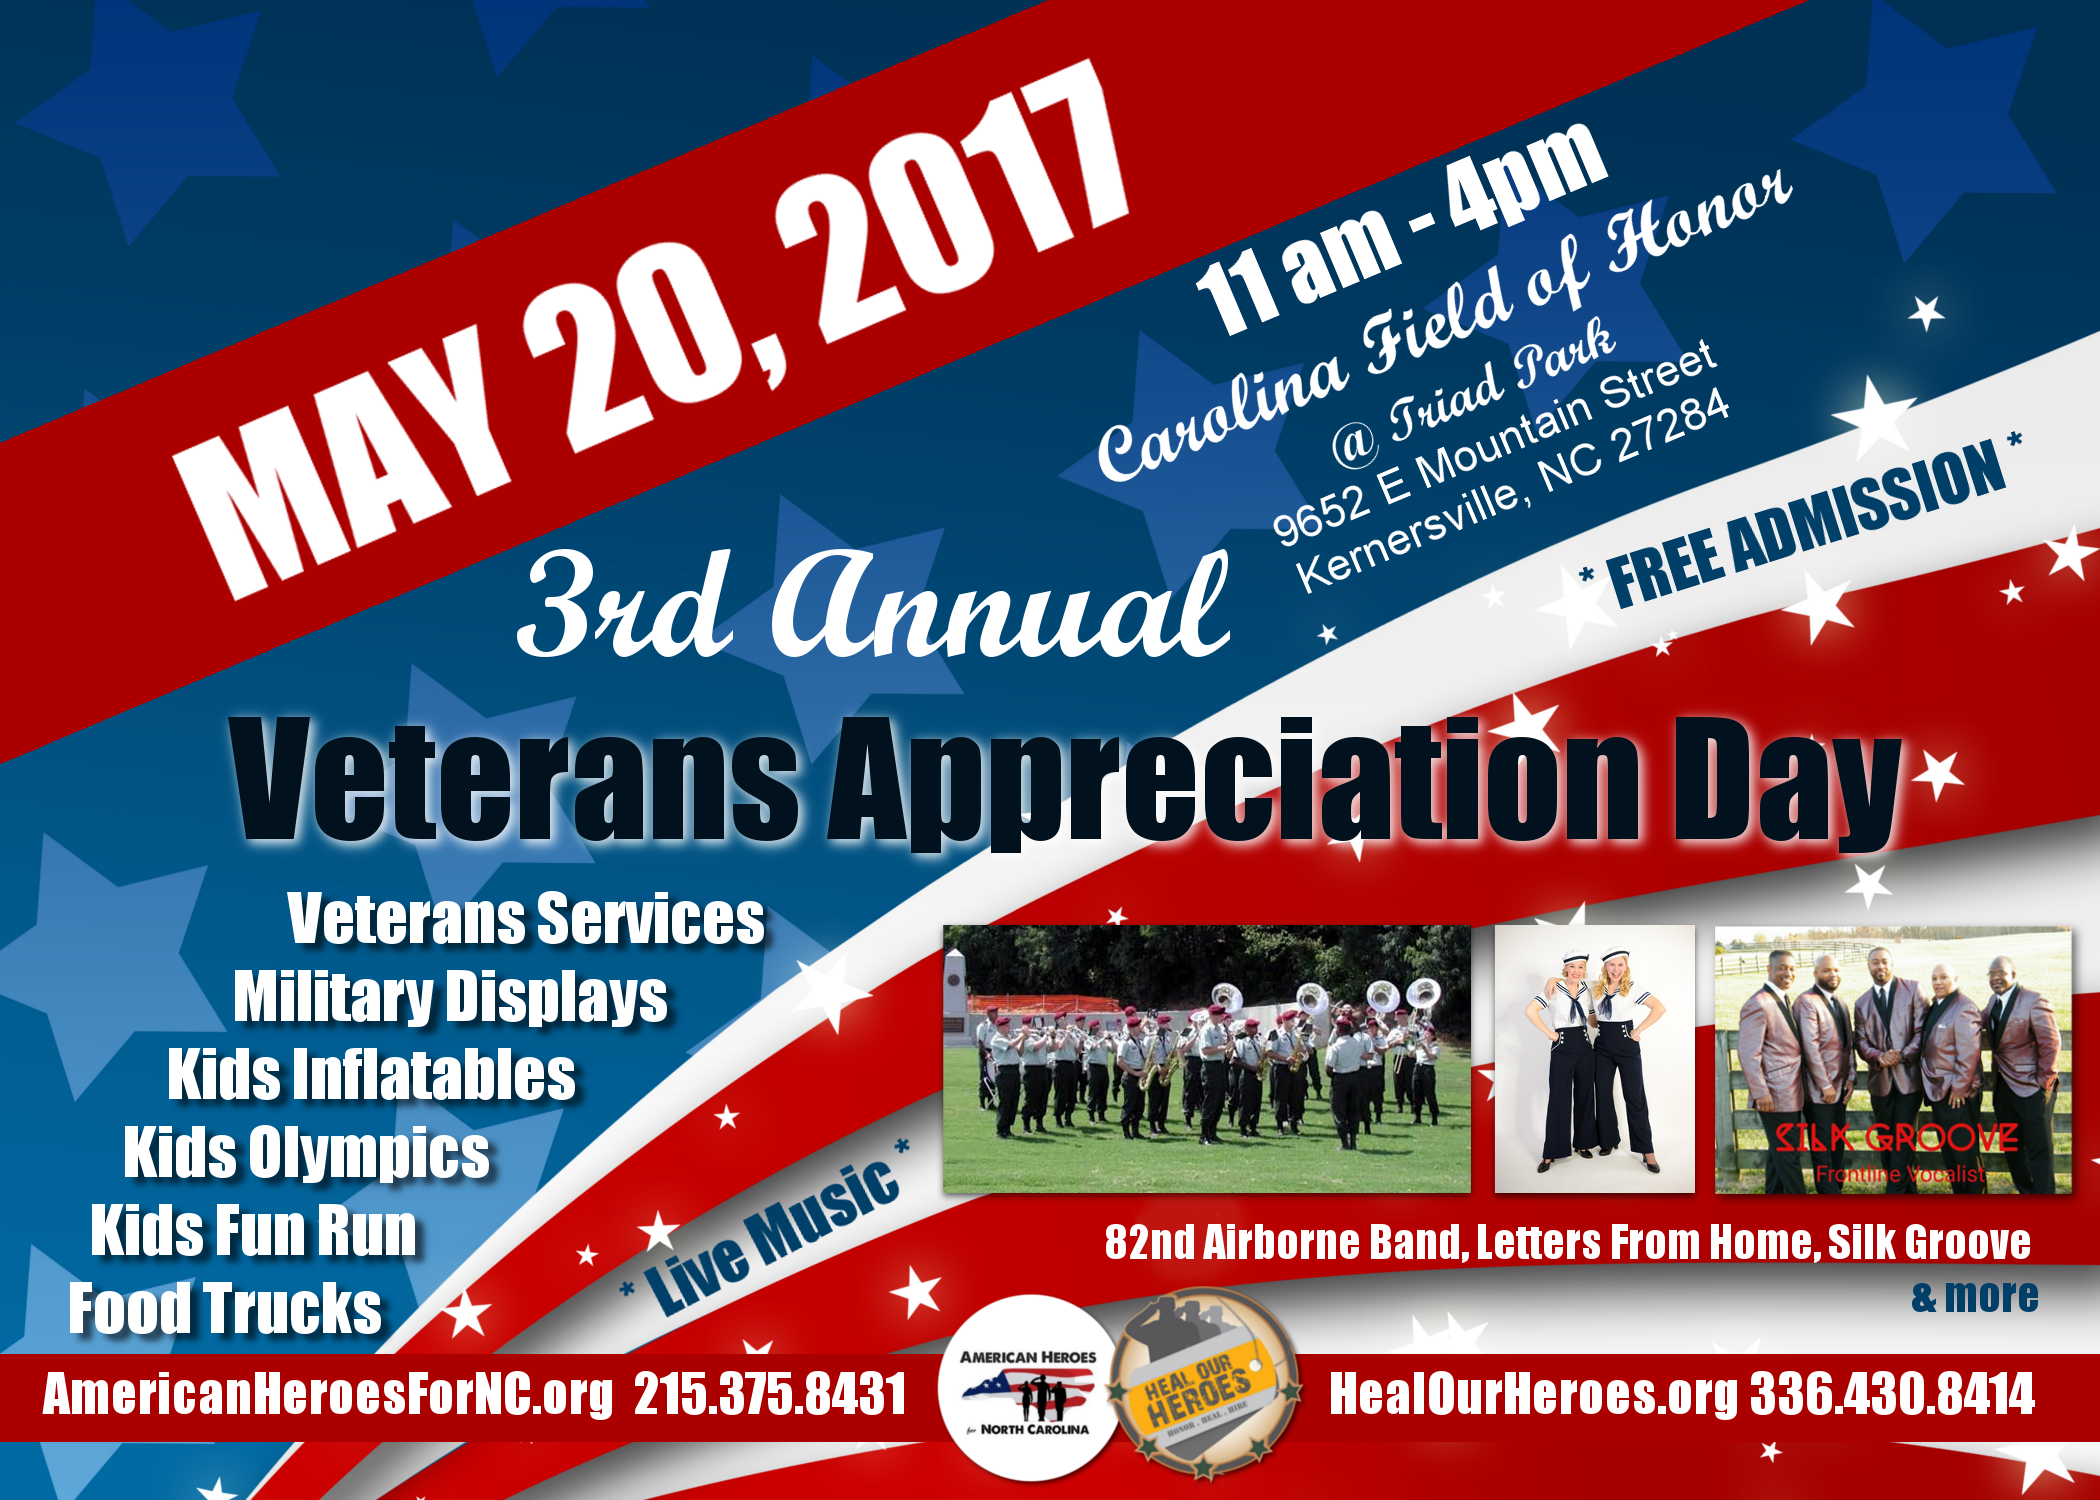 Veterans-Appreciation-2017-web-full-1.png